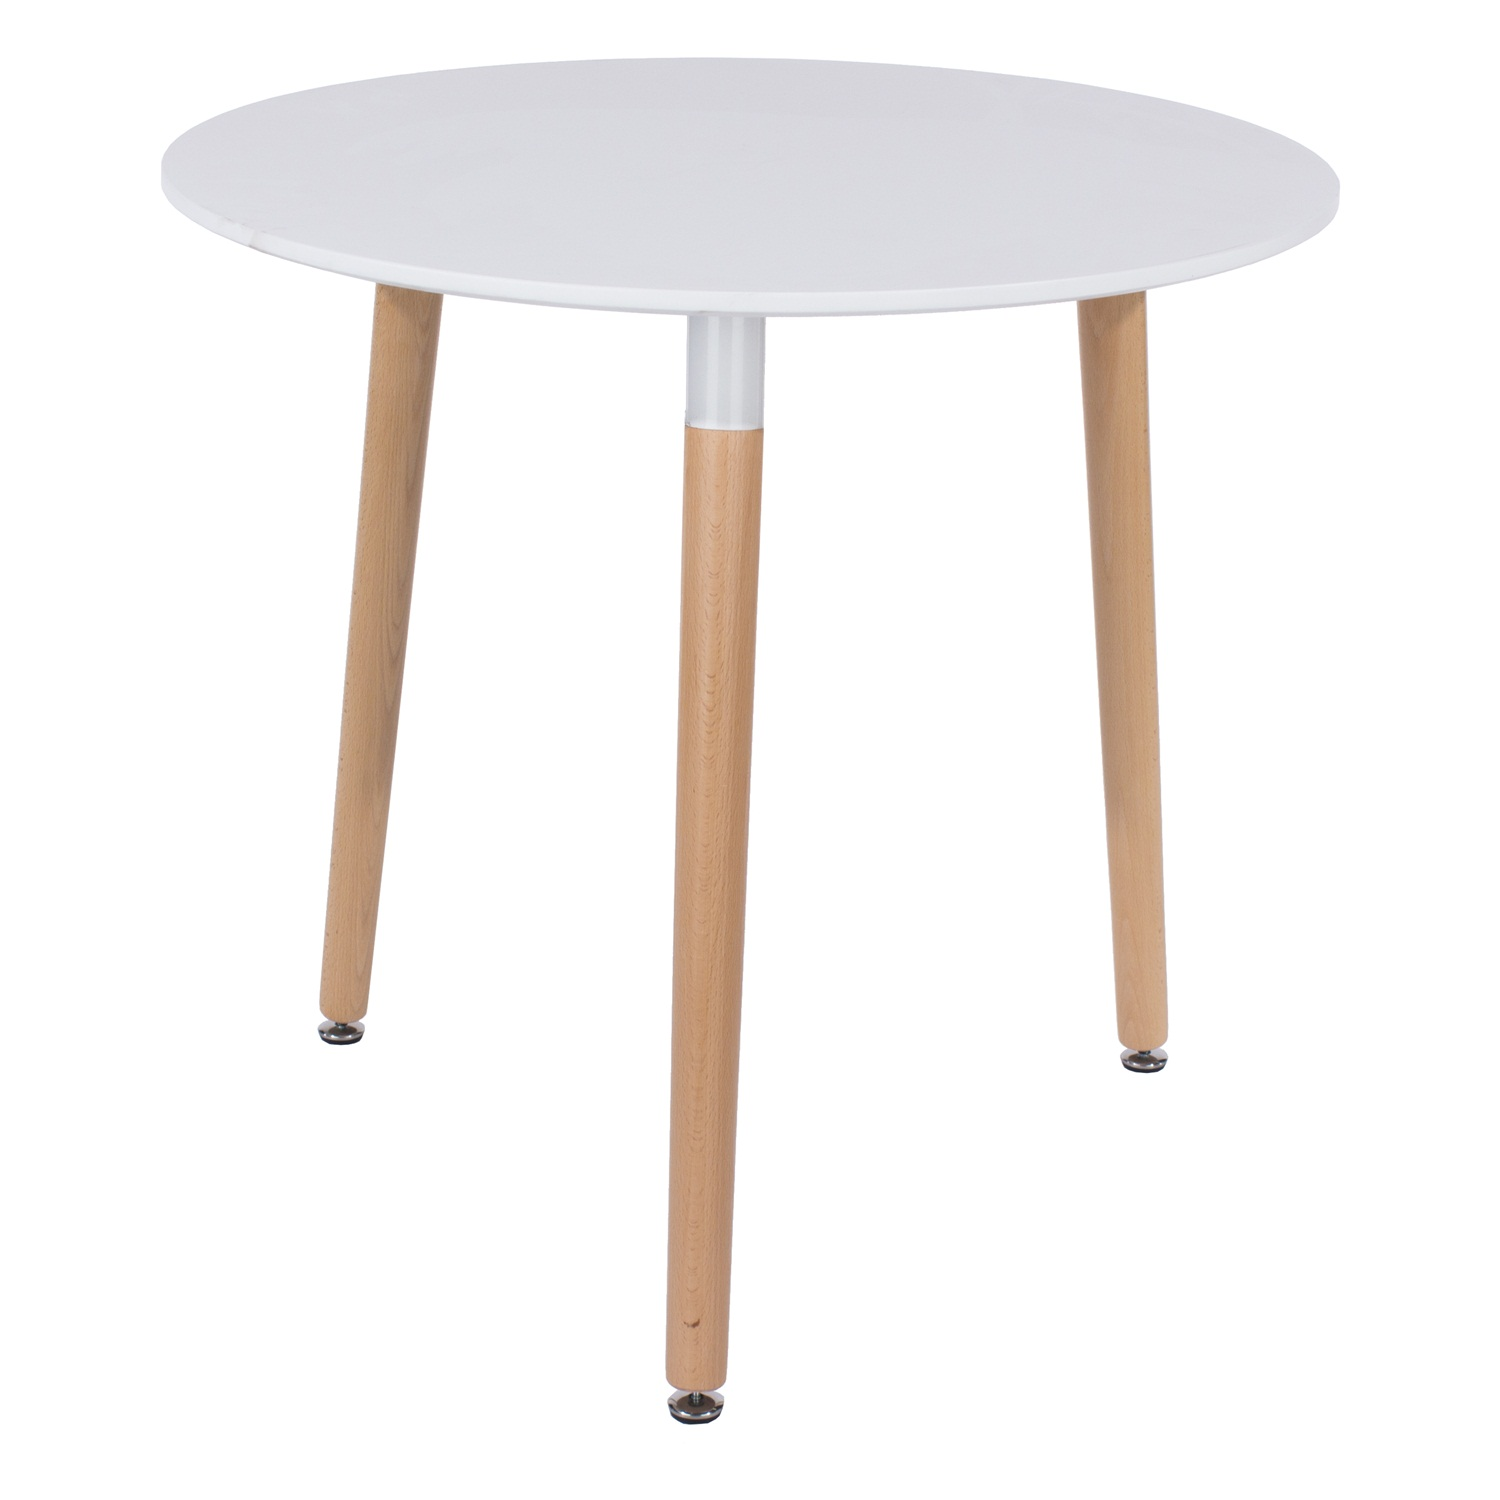 round table with wooden legs, white